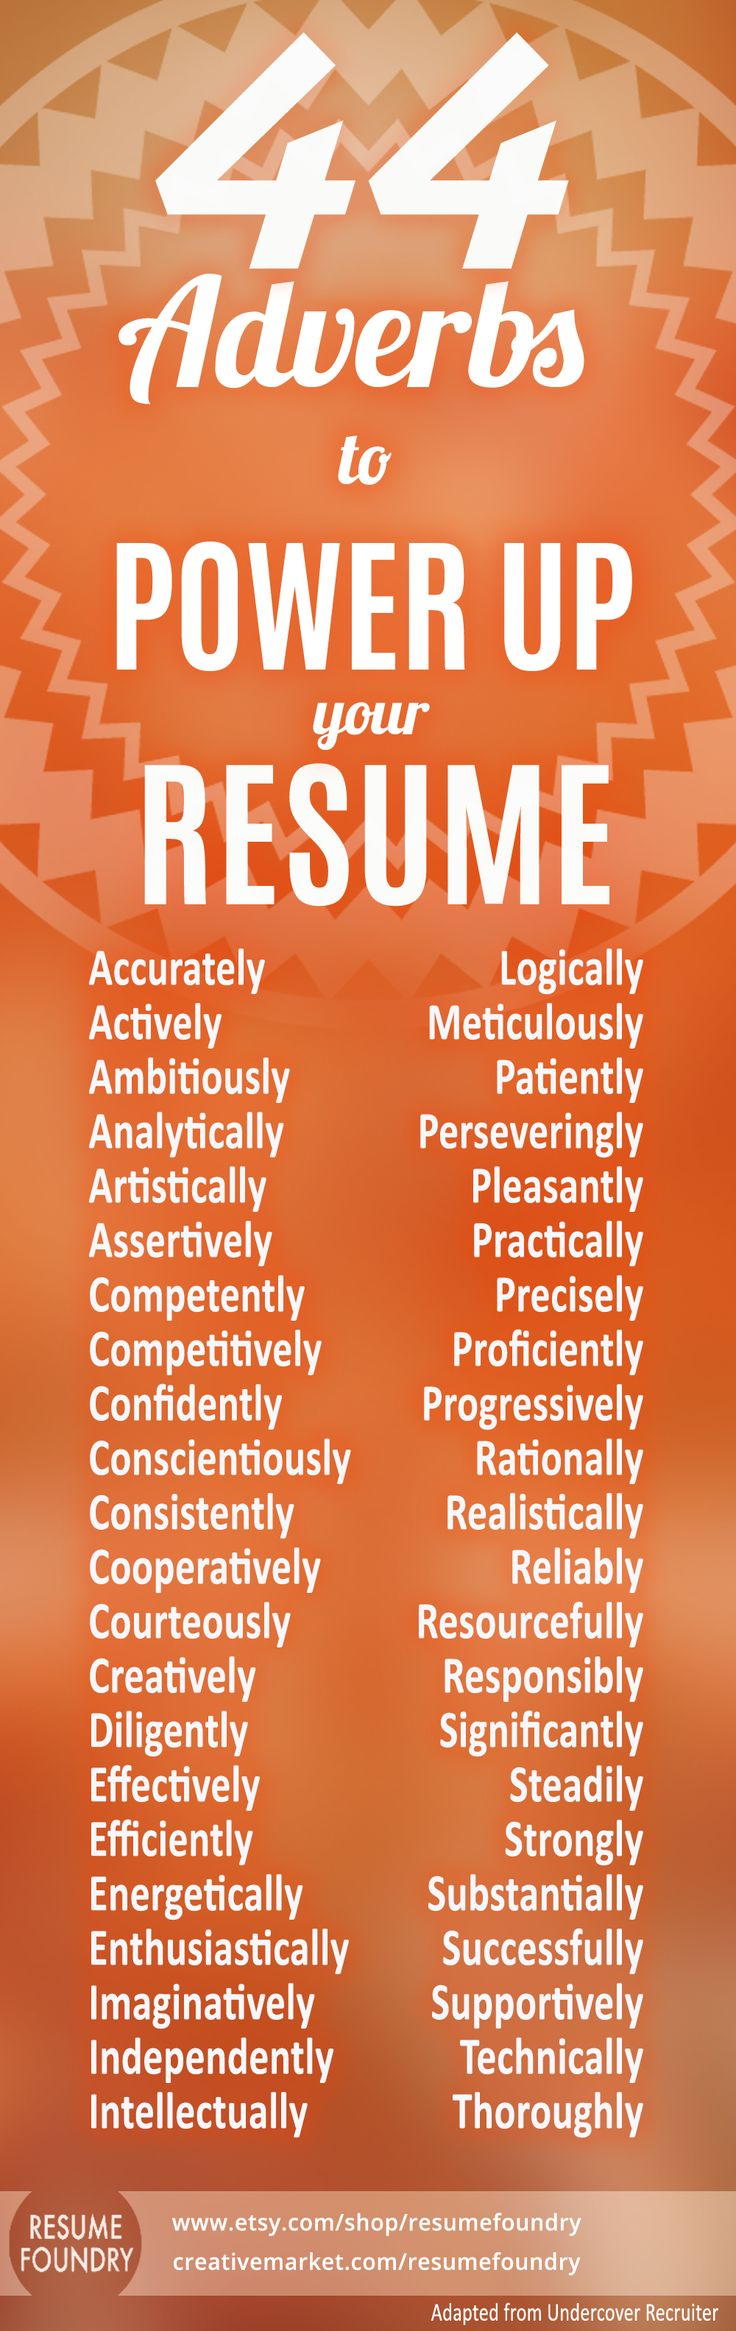 resume   44 adverbs to power